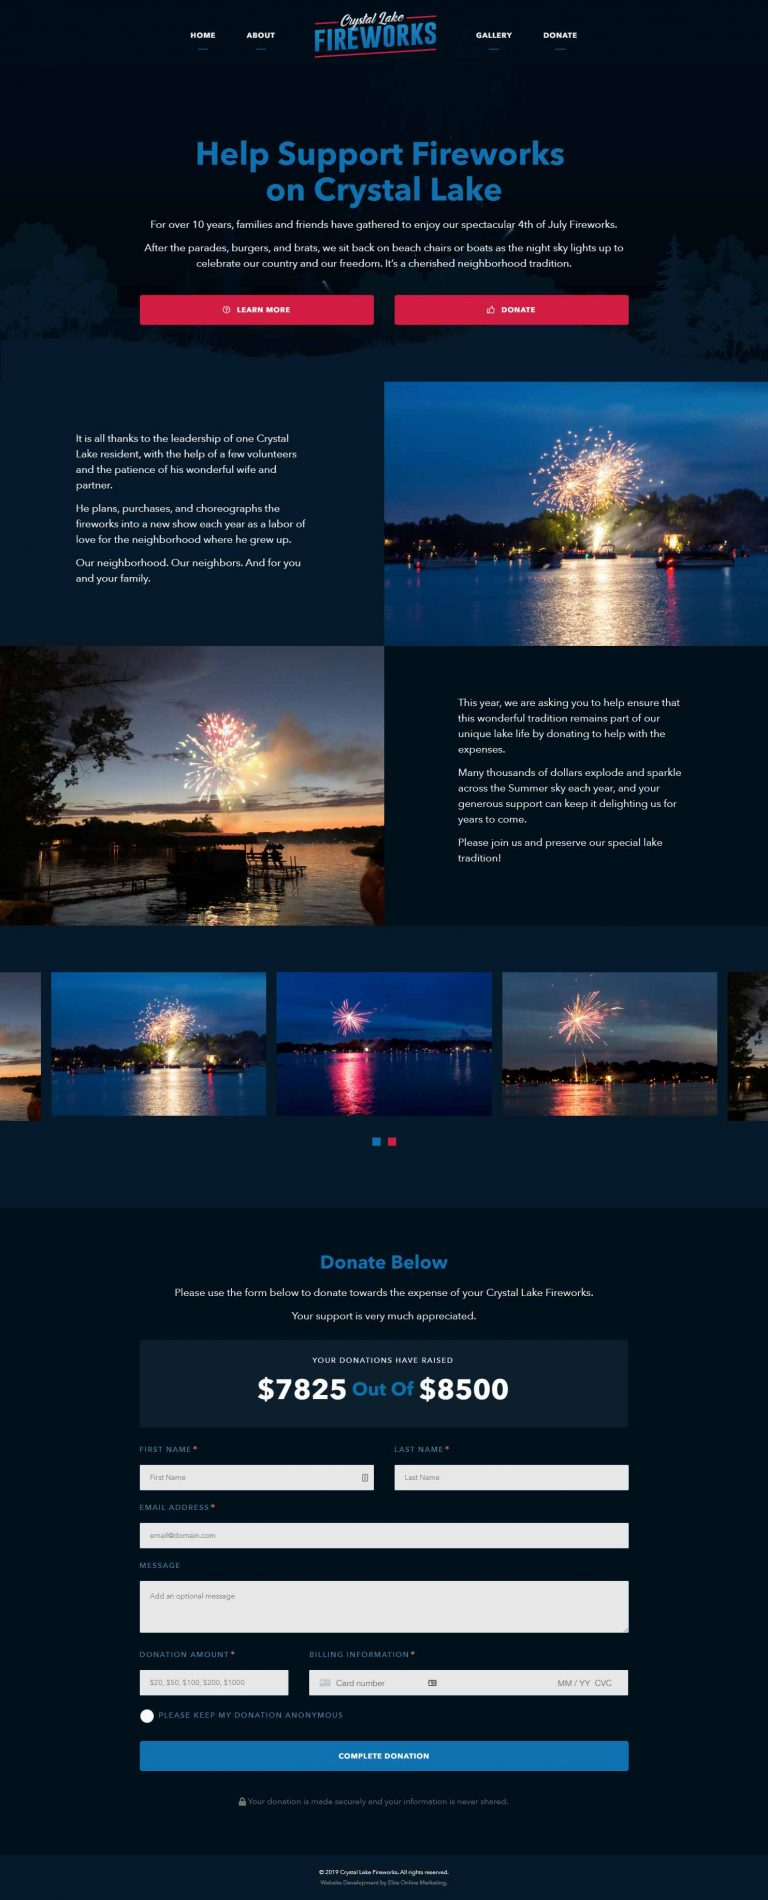 Elite Online Marketing - Crystal Lake Fireworks